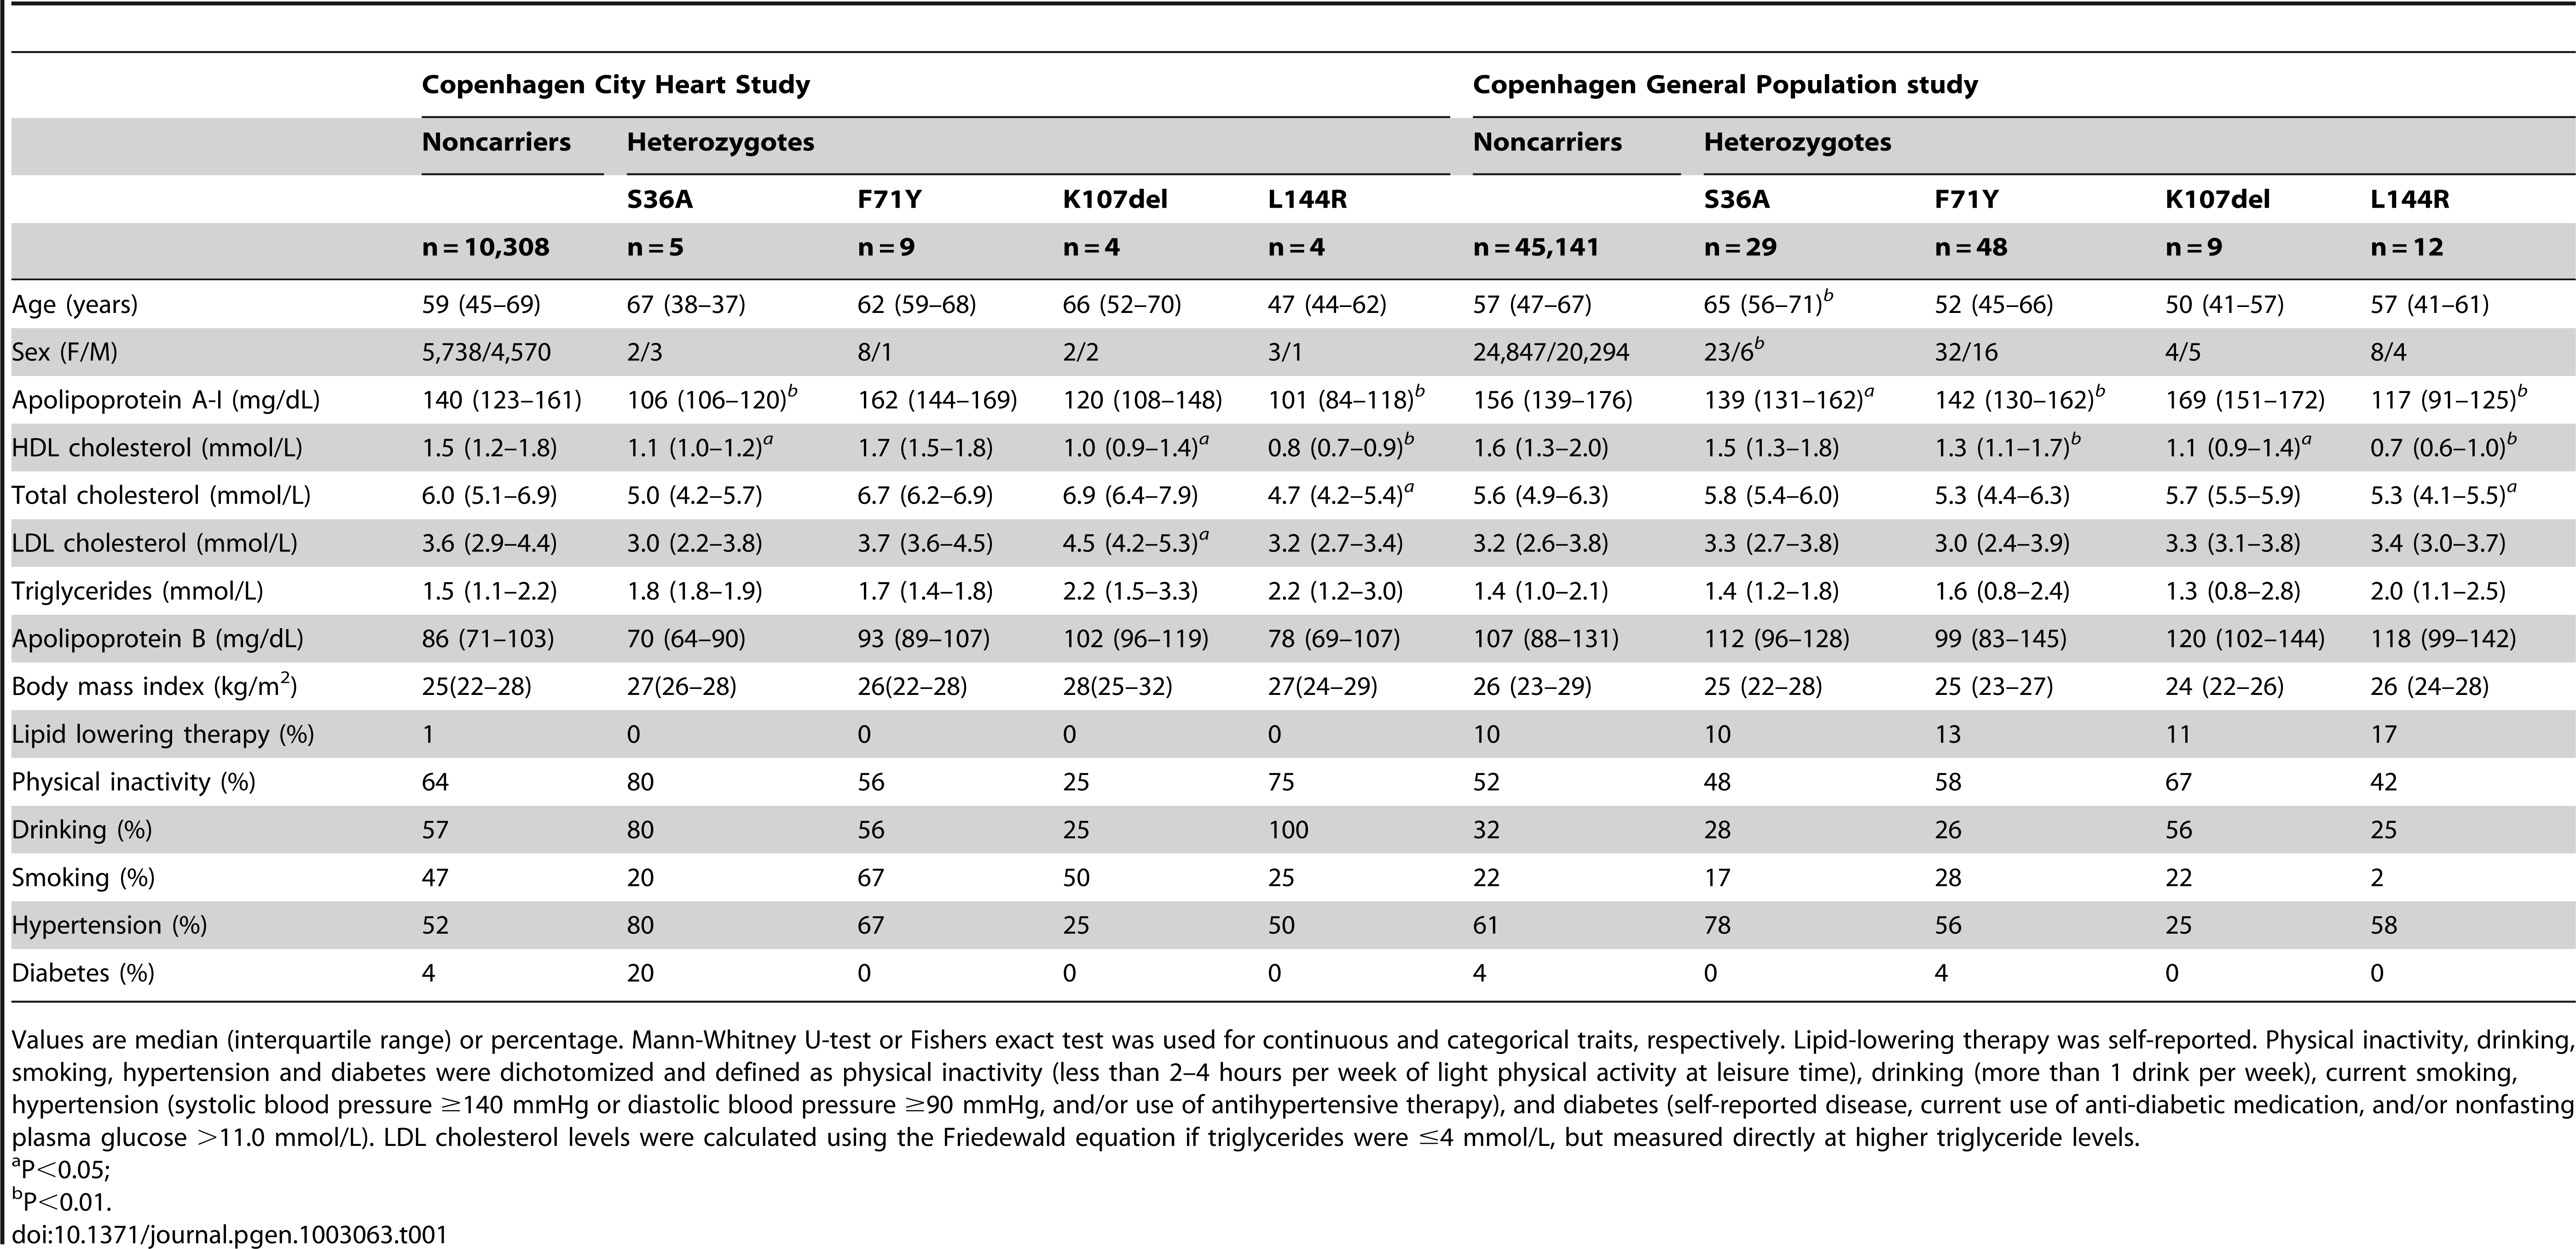 Characteristics of <i>APOA1</i> S36A, F71Y, K107del, and L144R heterozygotes and noncarriers in the Copenhagen City Heart Study (n=10,330) and the Copenhagen General Population study (n=45,239).